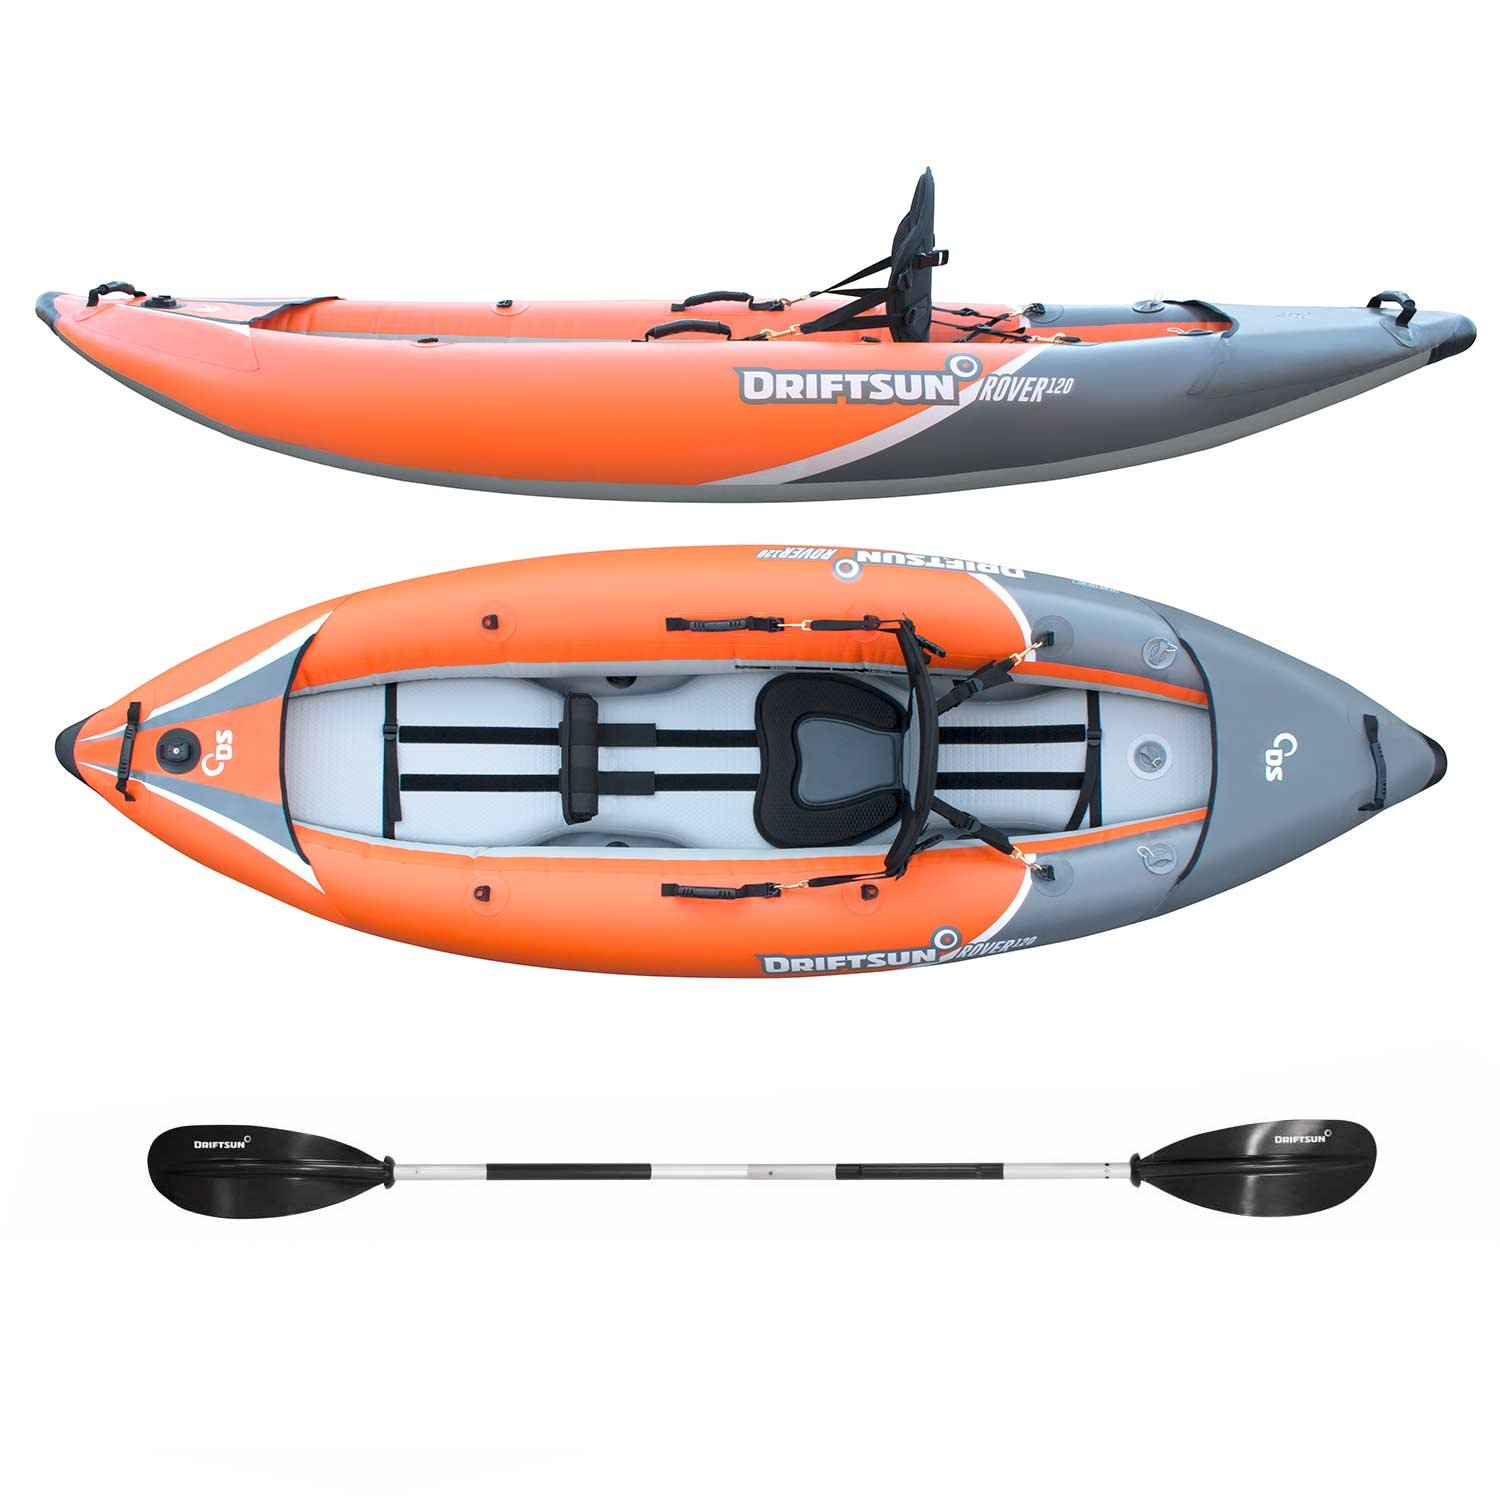 Driftsun Rover 120 Inflatable Single Person Kayak – One Person White Water Performance Kayak with High Pressure Floor, EVA Padded Seat, Action Cam Mount, Paddle, Pump and More